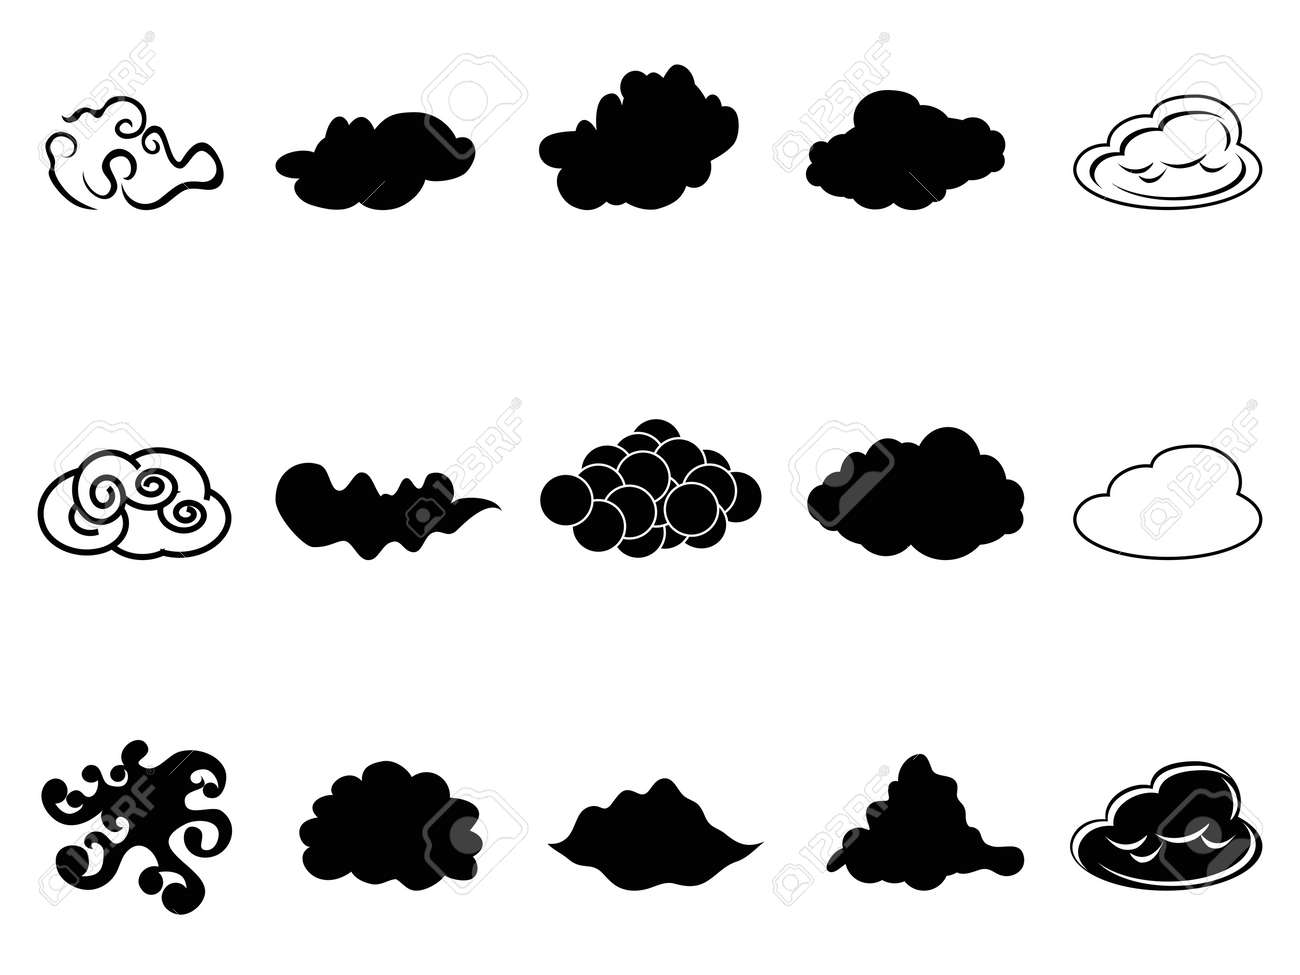 Isolated cloud symbol icons set from white background royalty free isolated cloud symbol icons set from white background stock vector 17628091 biocorpaavc Gallery